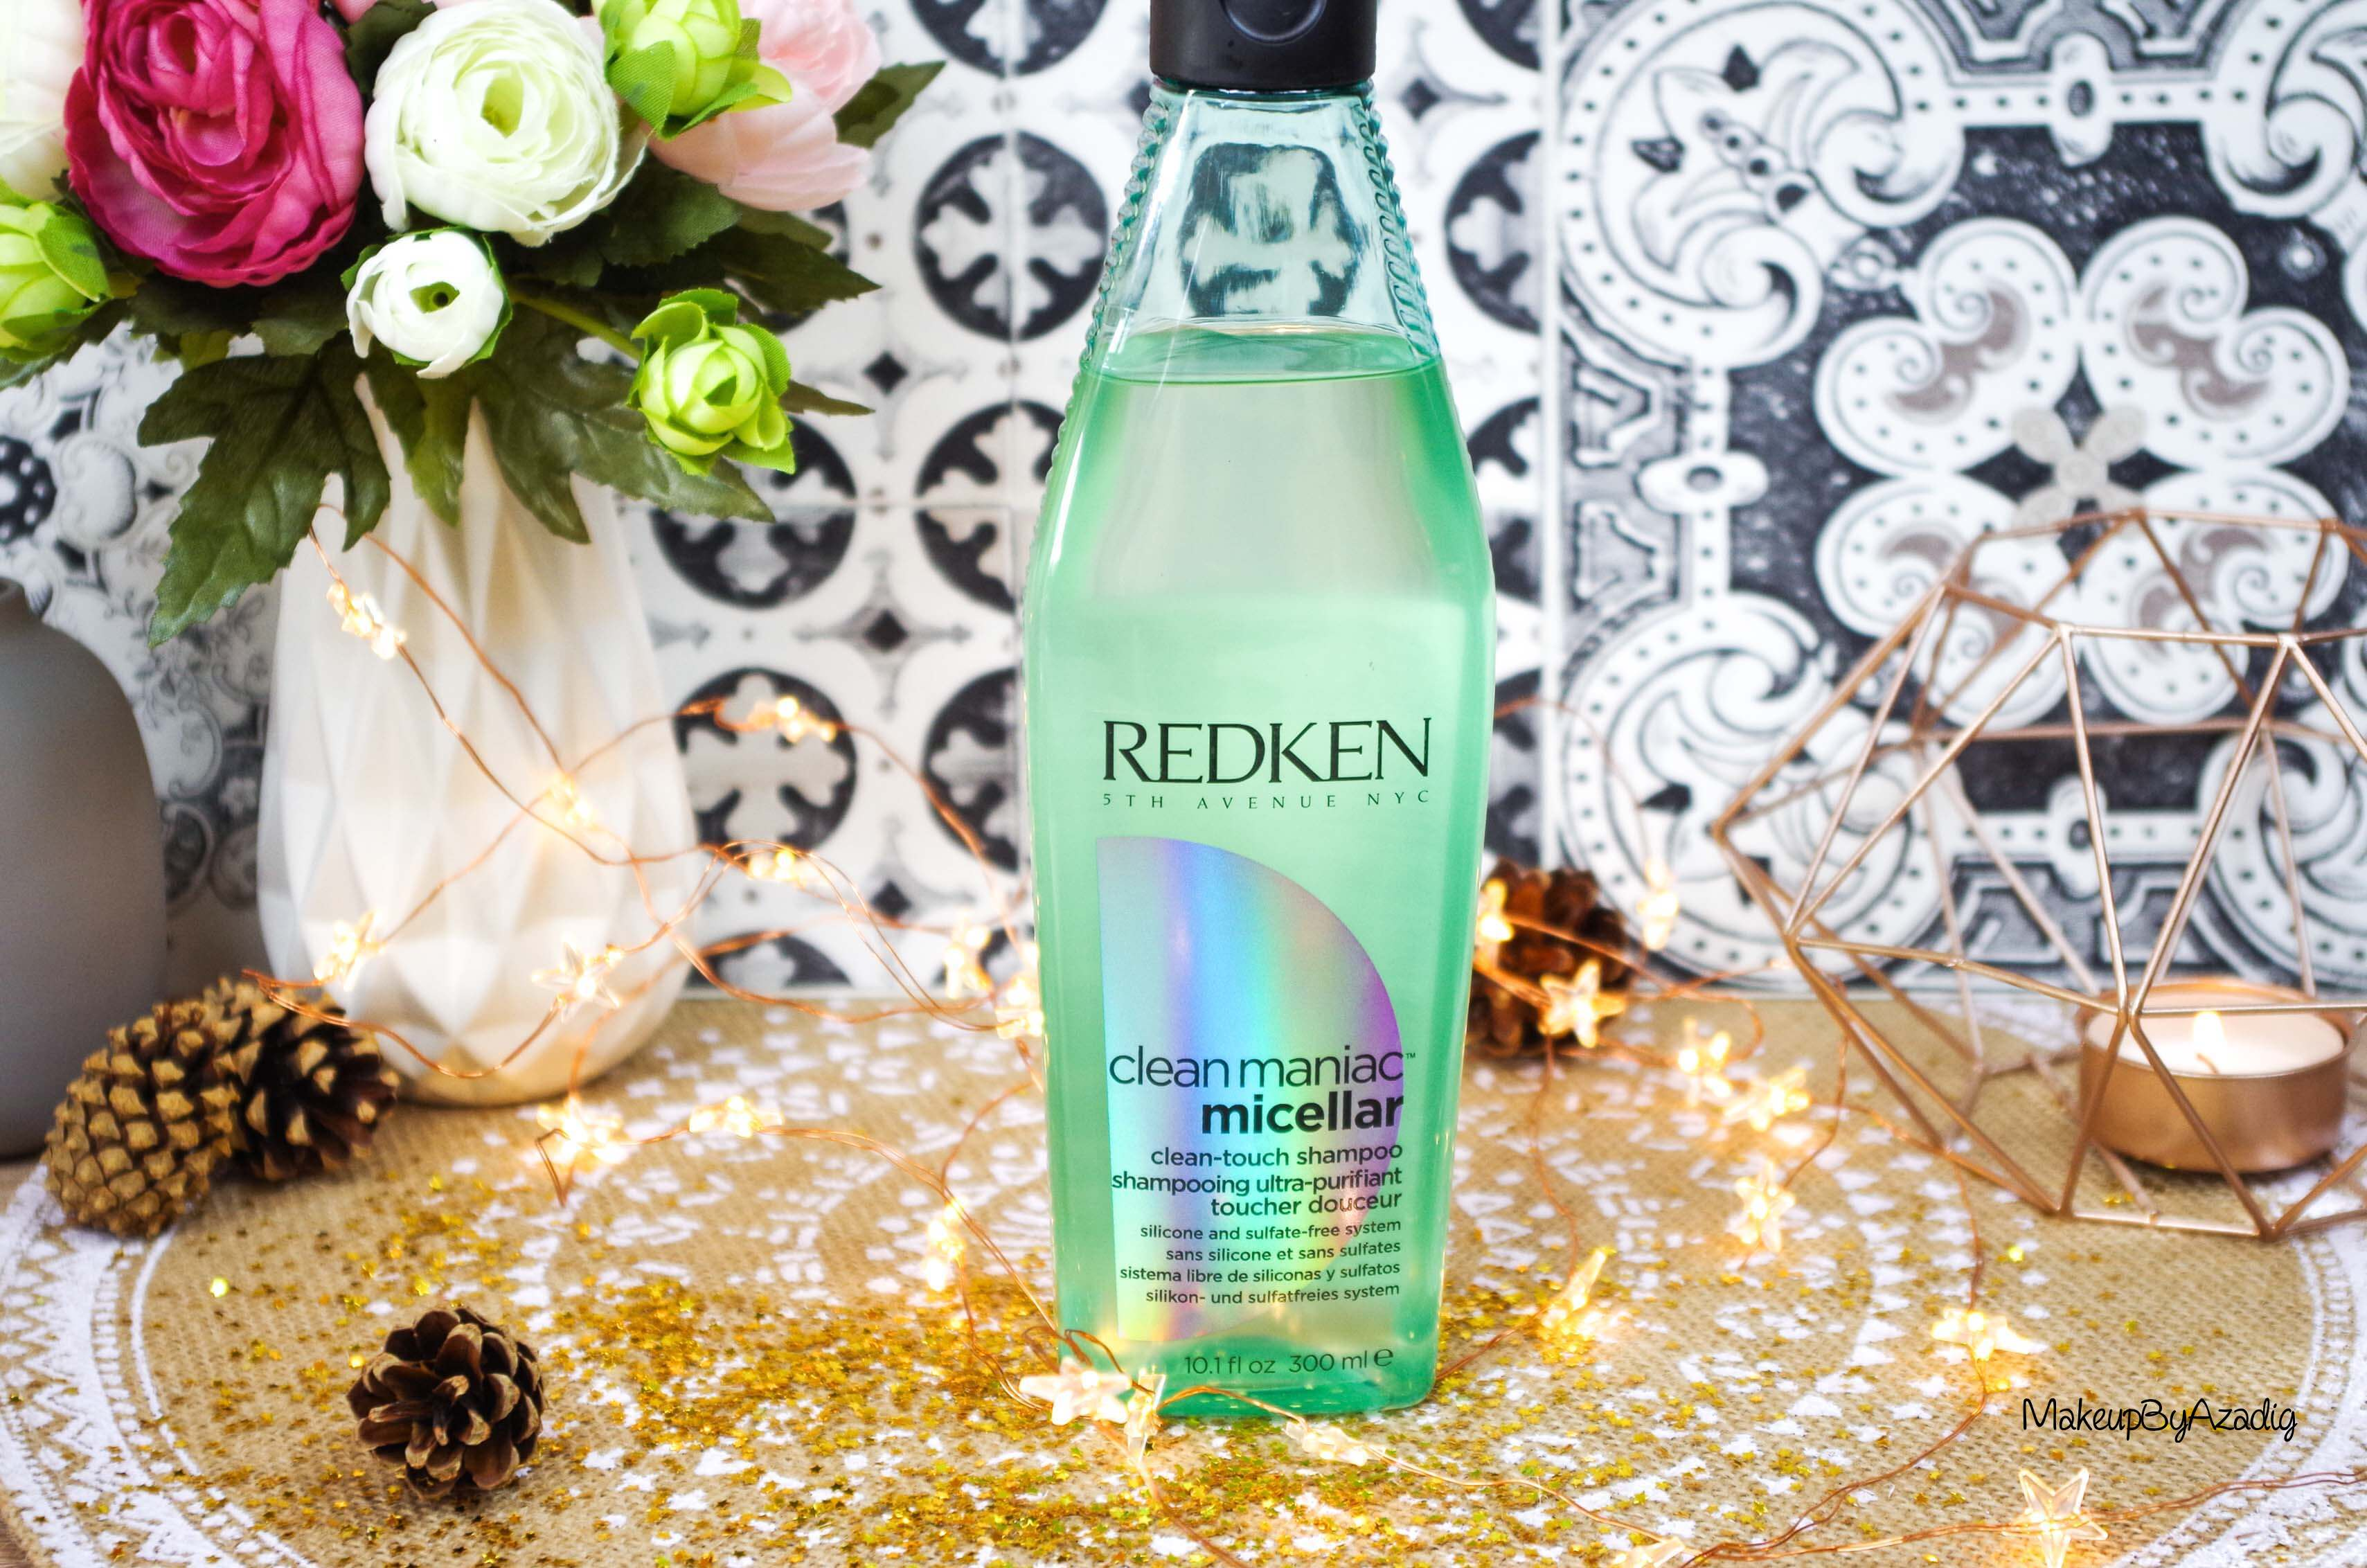 revue-shampooing-conditioner-clean-maniac-redken-programme-detox-anti-pollution-makeupbyazadig-cleanhair-sans-silicone-sulfate-free